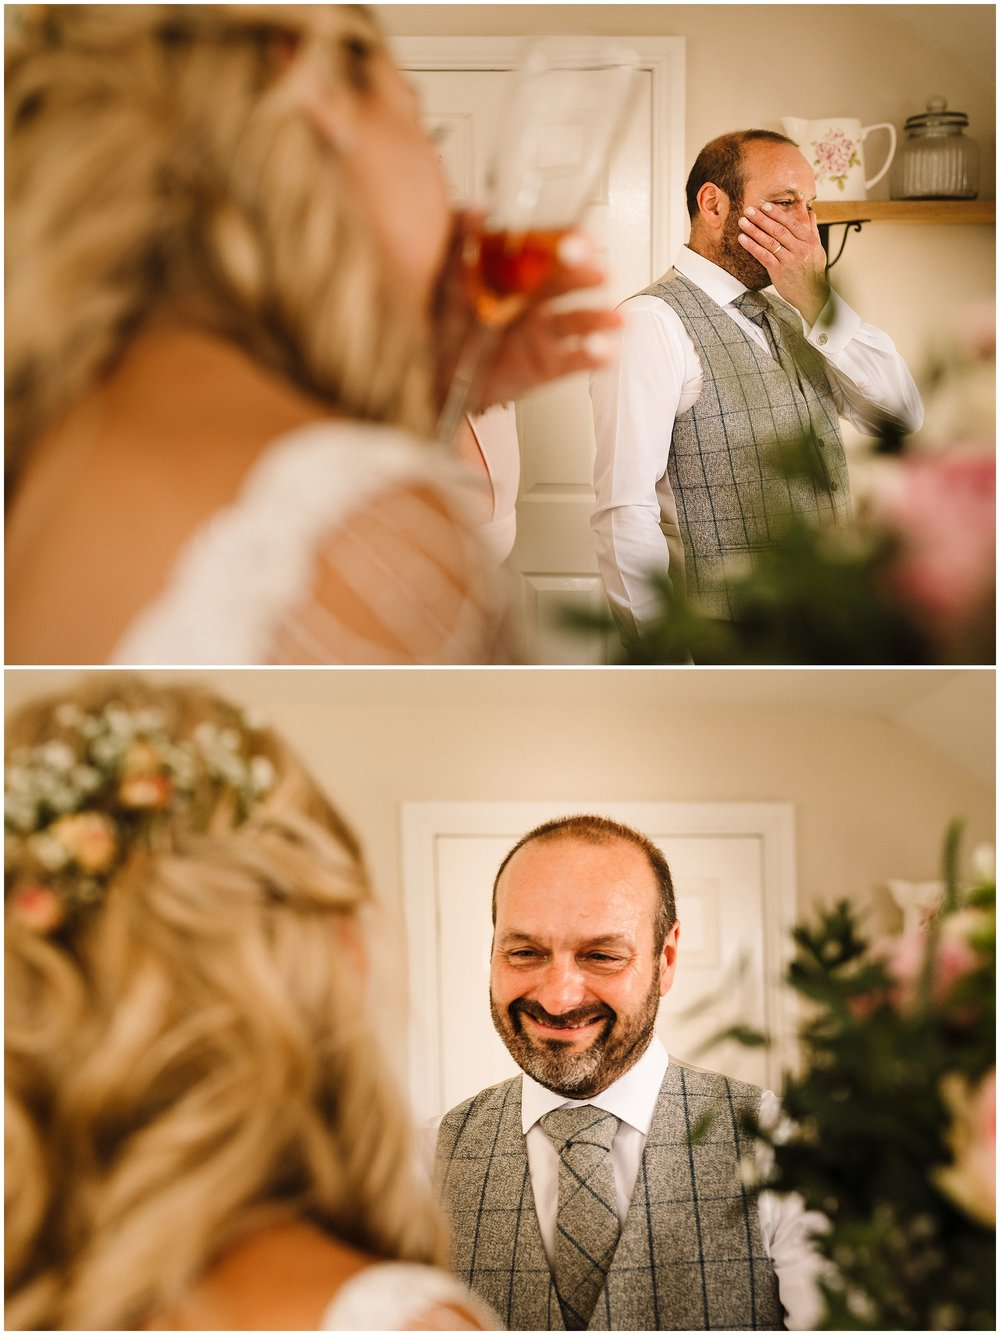 FATHER OF THE BRIDE CRYING AS HE SEES HIS DAUGHTER IN HER WEDDING DRESS